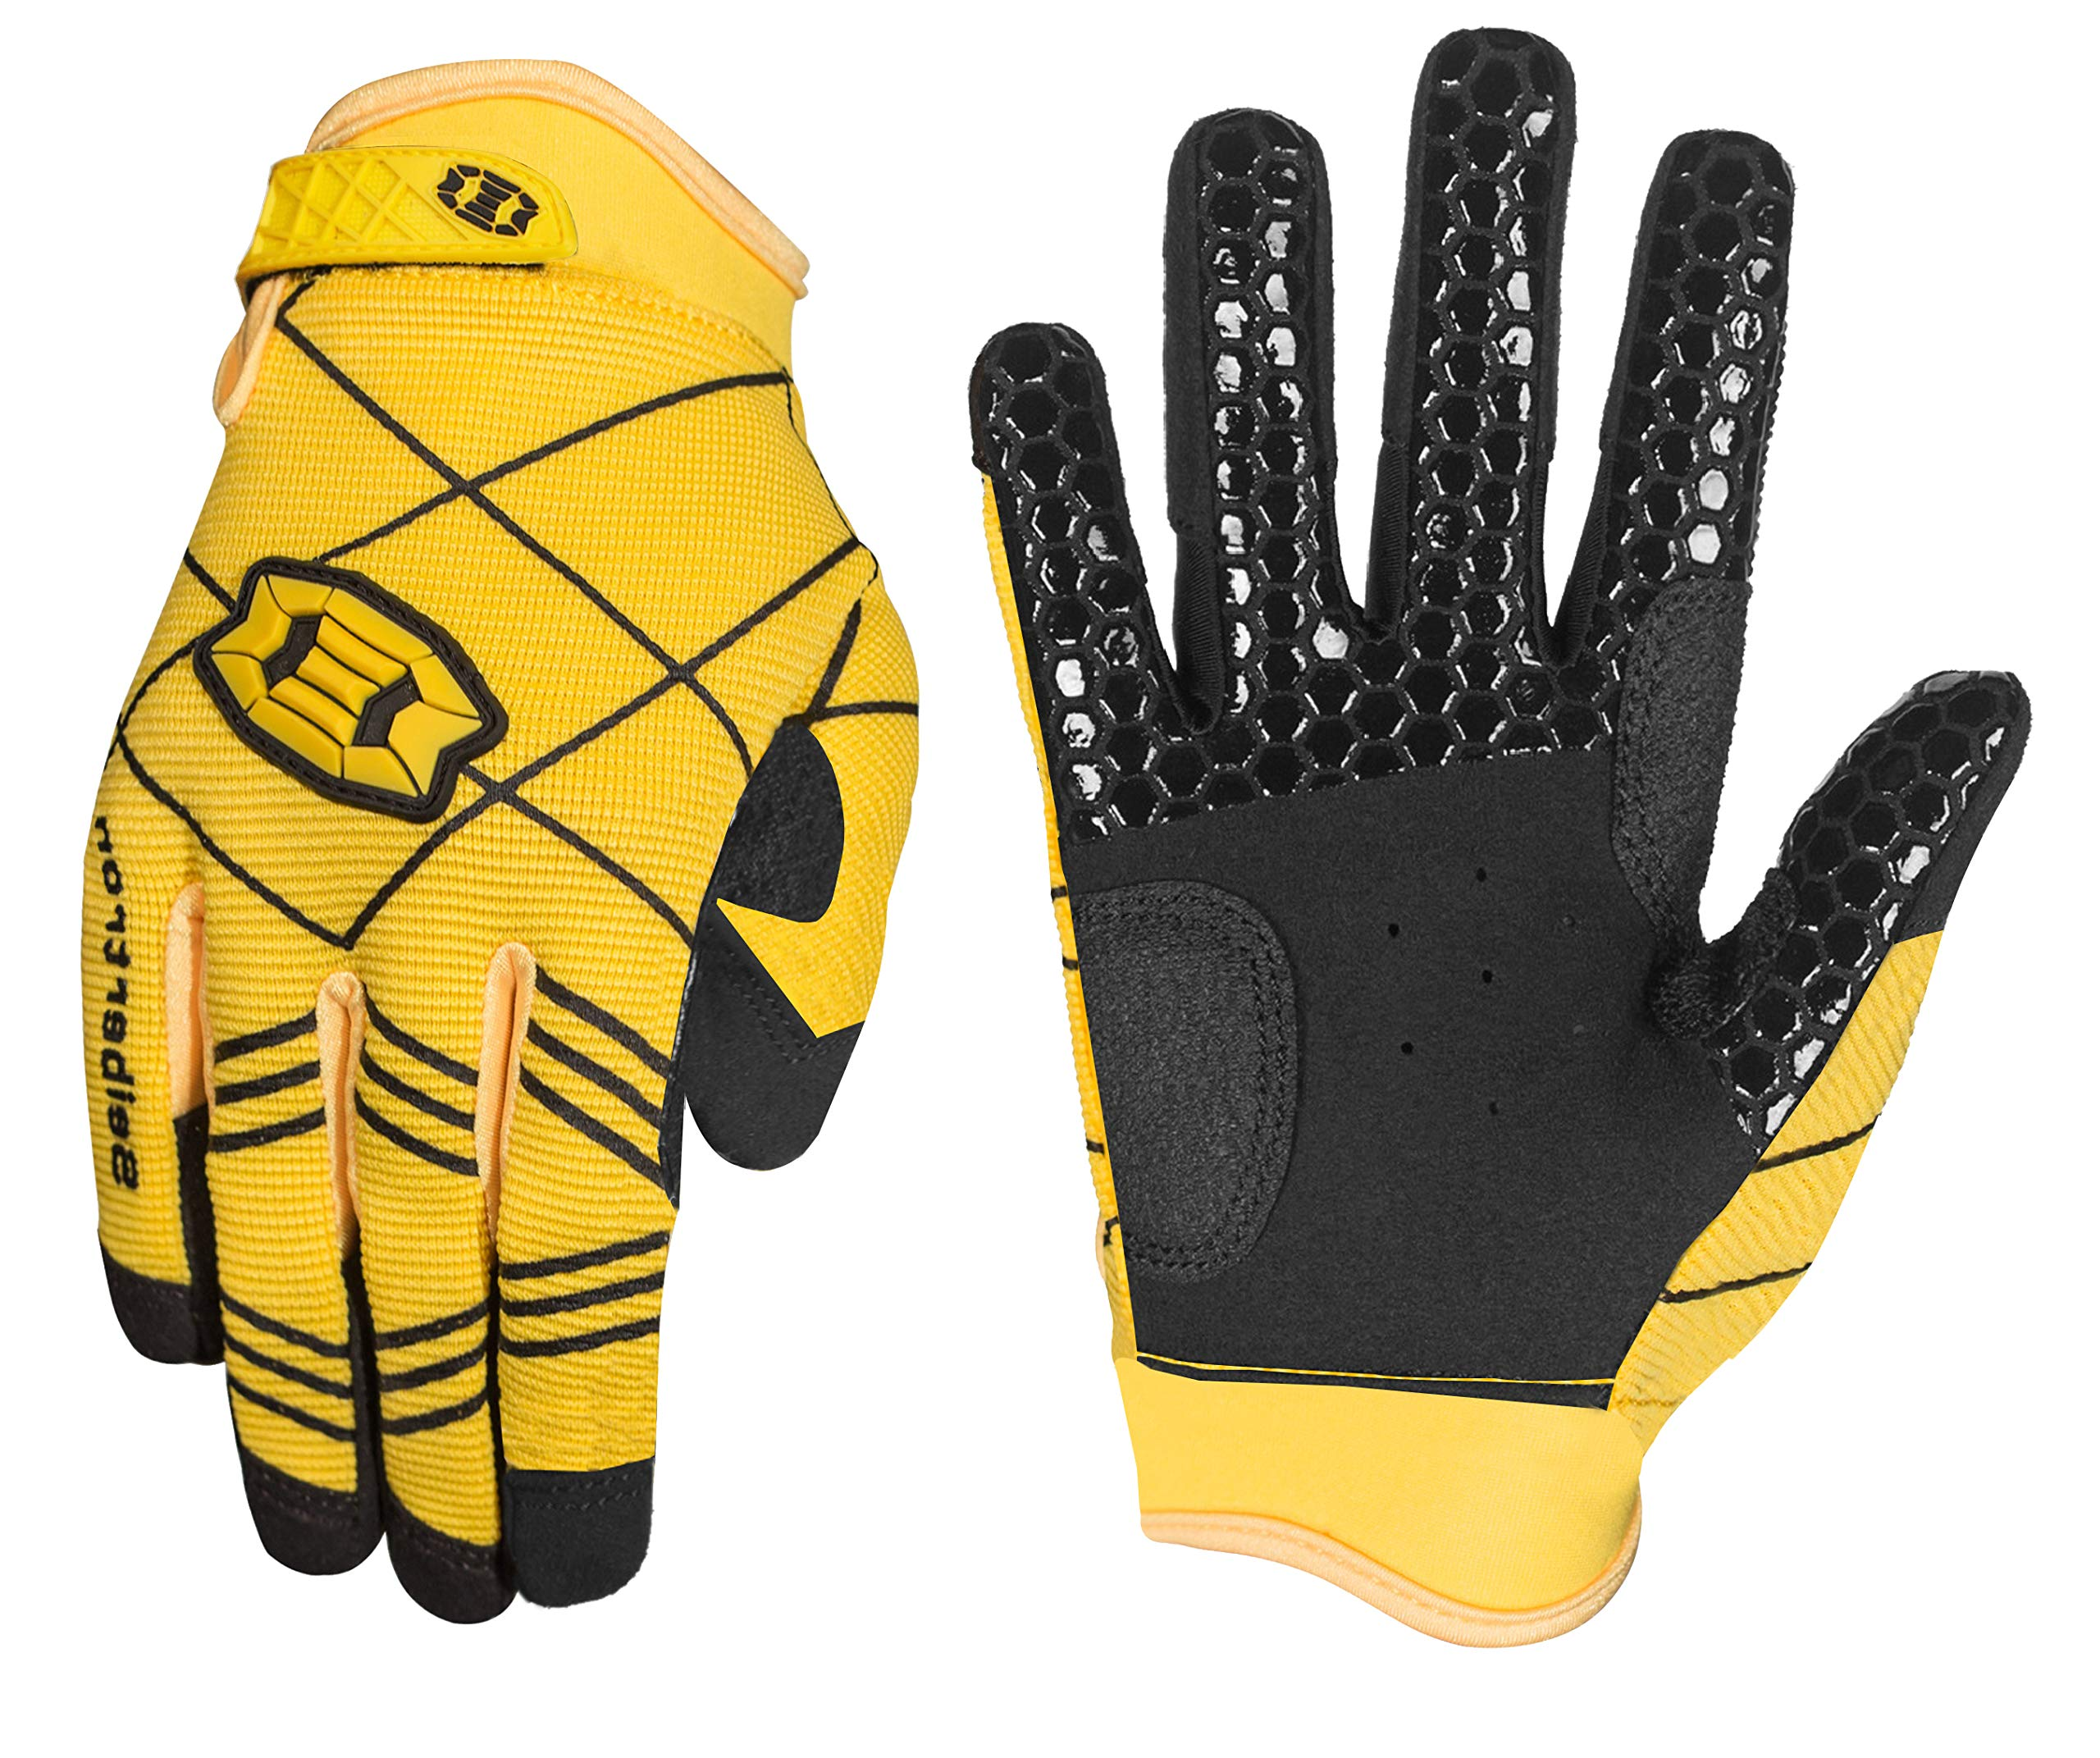 Seibertron B-A-R PRO 2.0 Signature Baseball/Softball Batting Gloves Super Grip Finger Fit for Youth Yellow XS